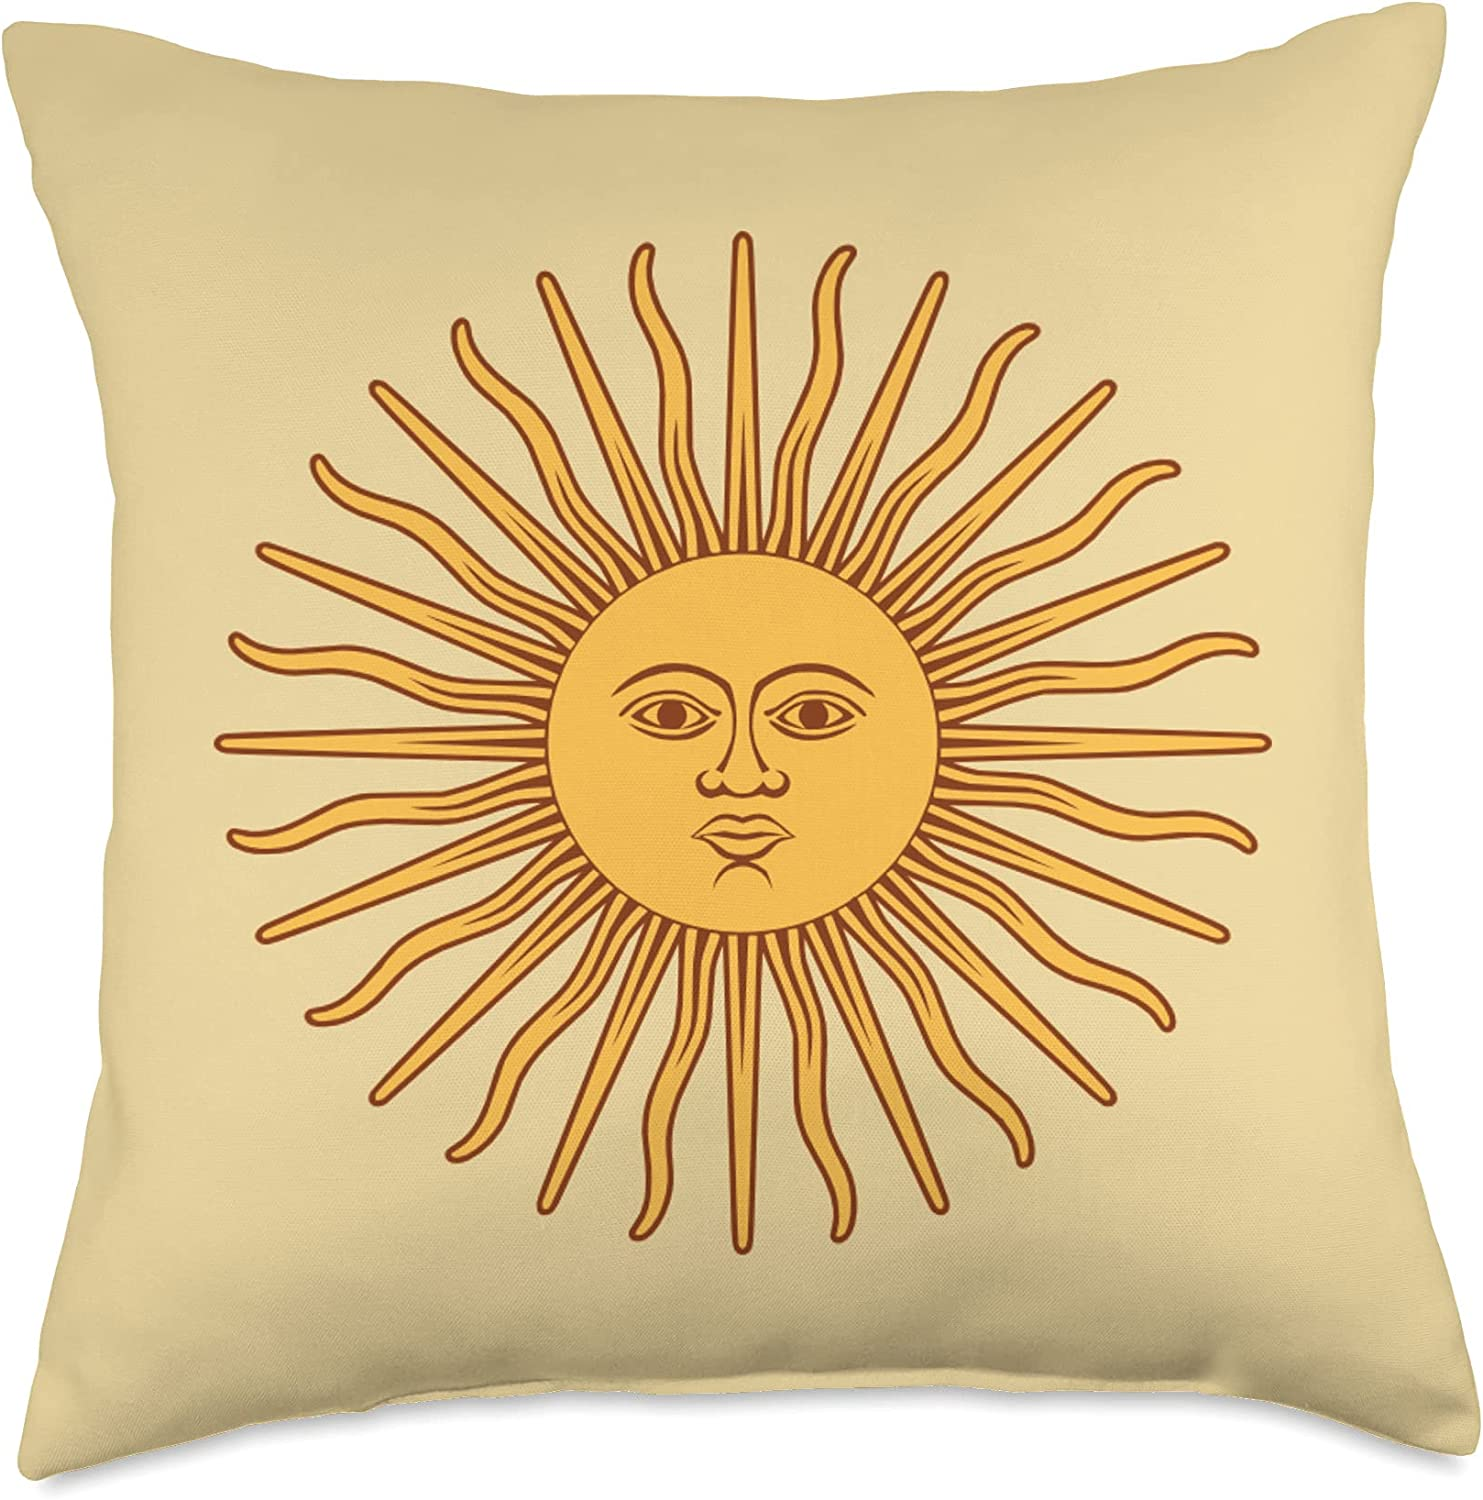 es designs SALENEW very popular! Sun with Face Multicolor 18x18 Pillow Branded goods Throw